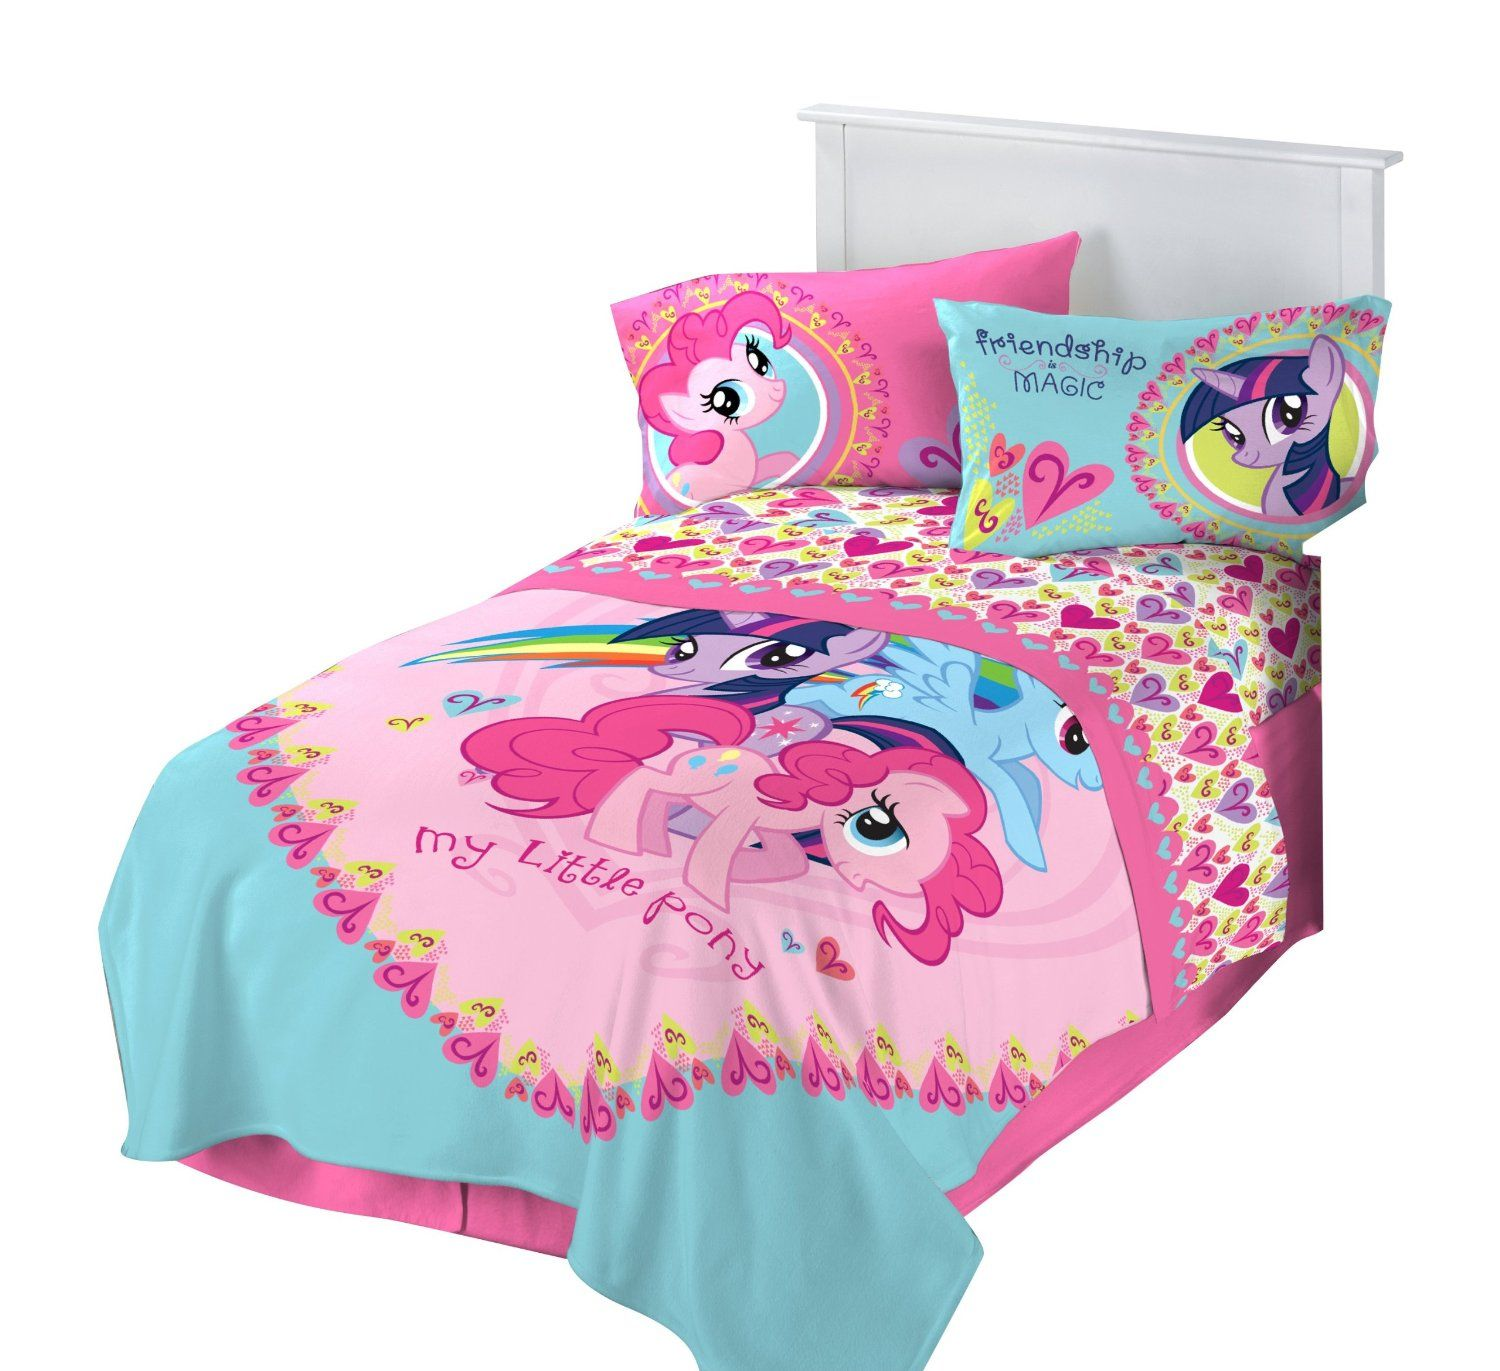 My Little Pony Party Planning Ideas Supplies Horse Theme Birthday Parties Ridingcorner